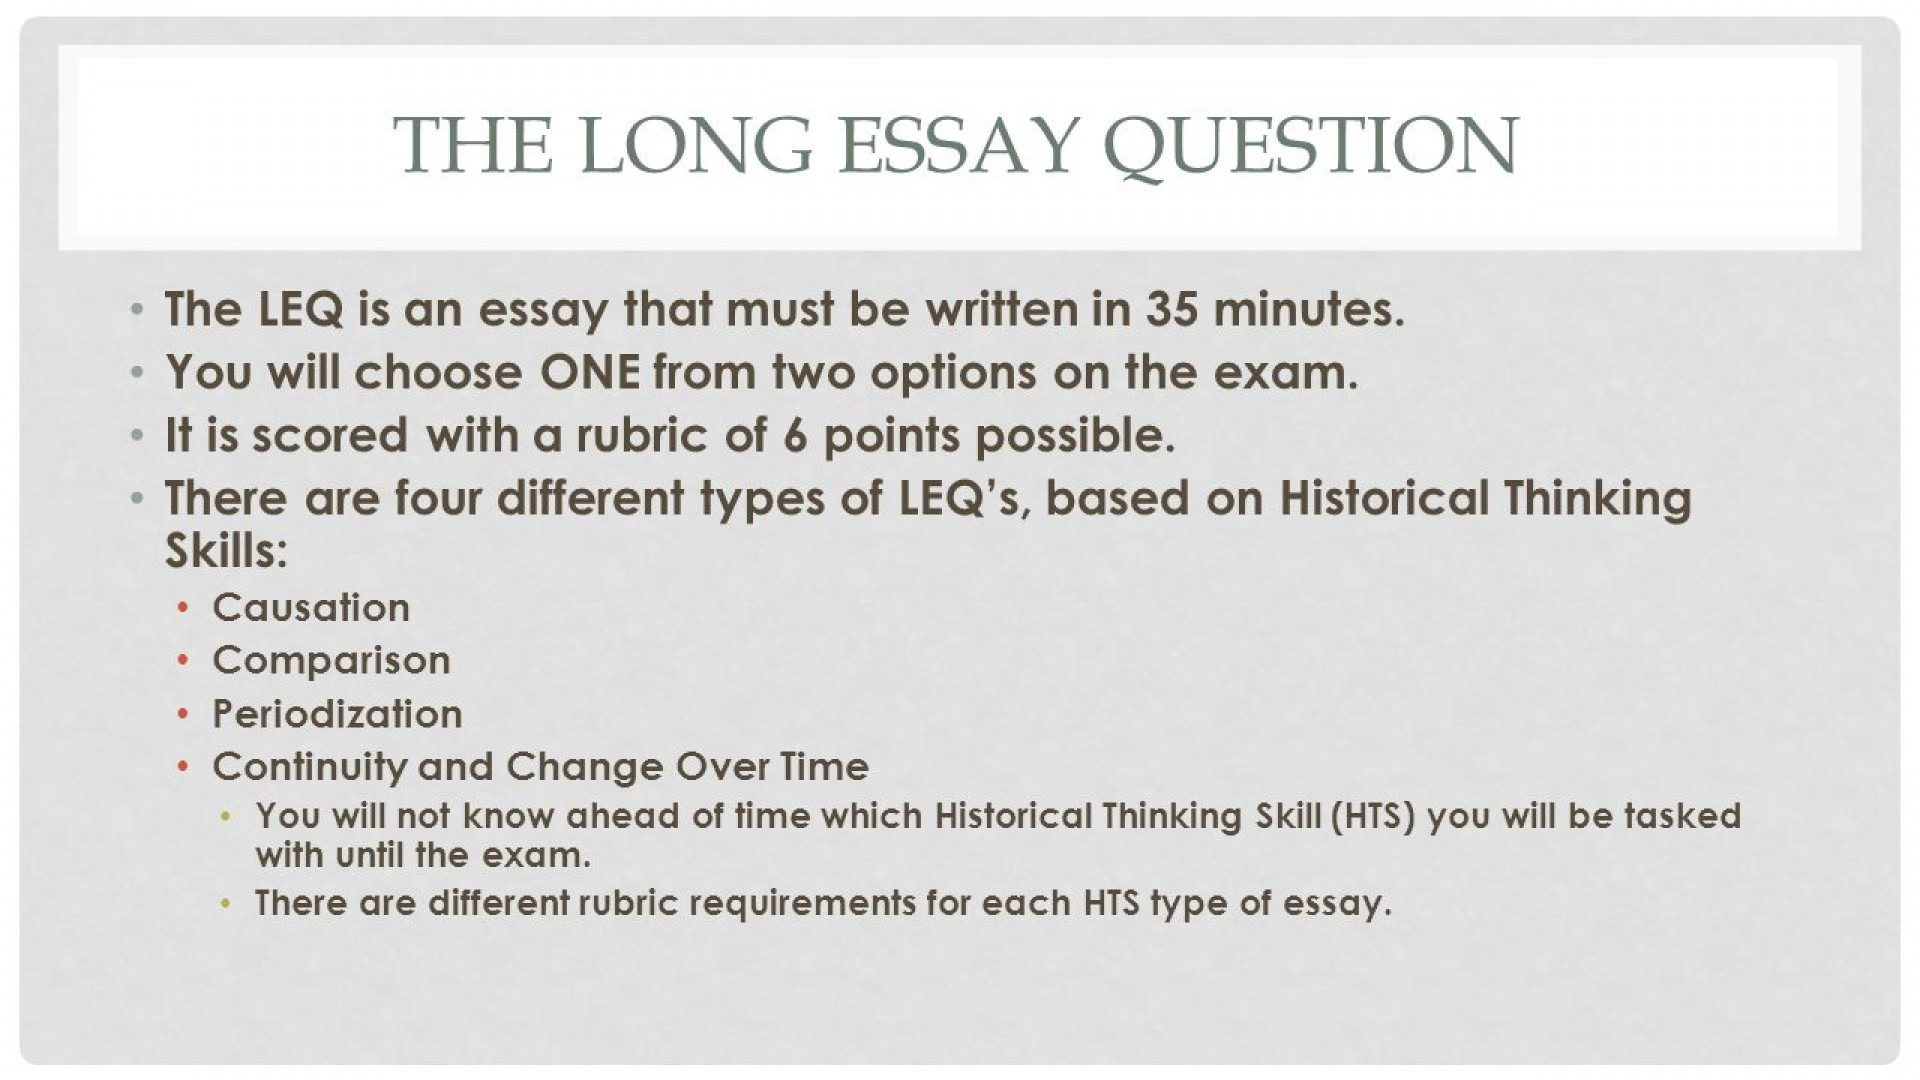 013 How Long Is An Essay Thelongessayquestion Staggering A Short Response Outline Does Question Answer Have To Be 1920